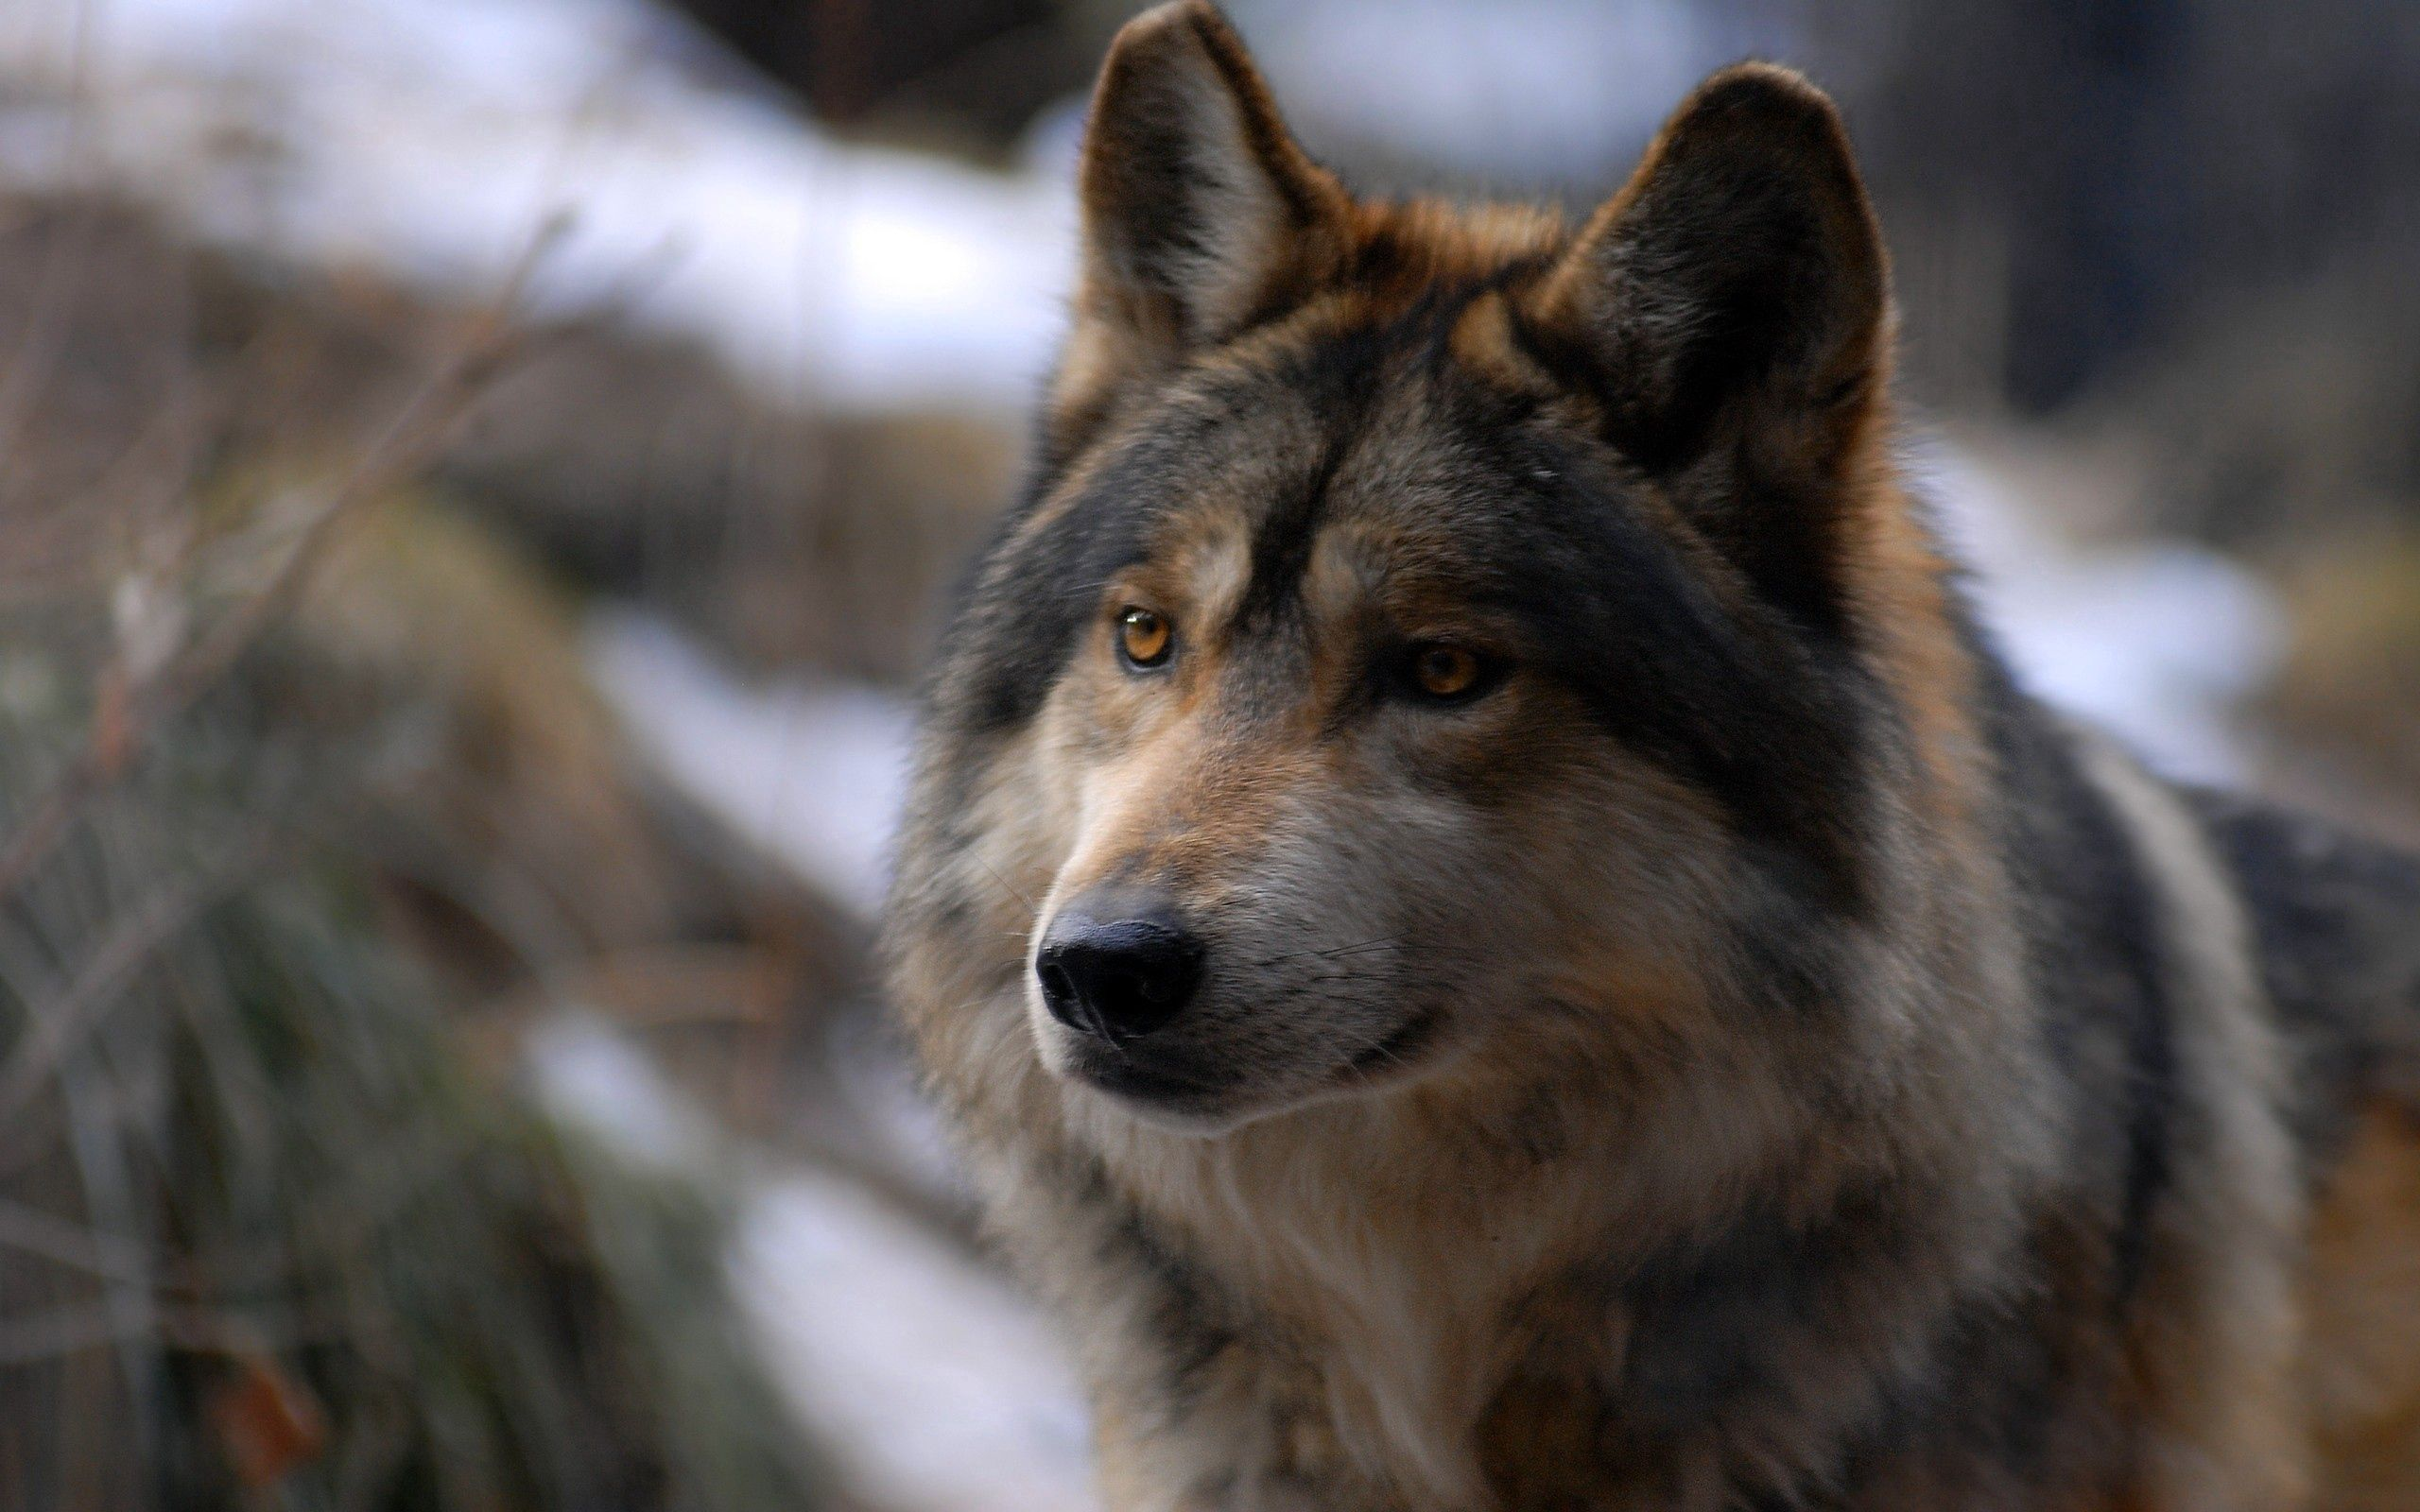 99042 download wallpaper Animals, Wolf, Sight, Opinion, Wild, Spotted, Spotty screensavers and pictures for free